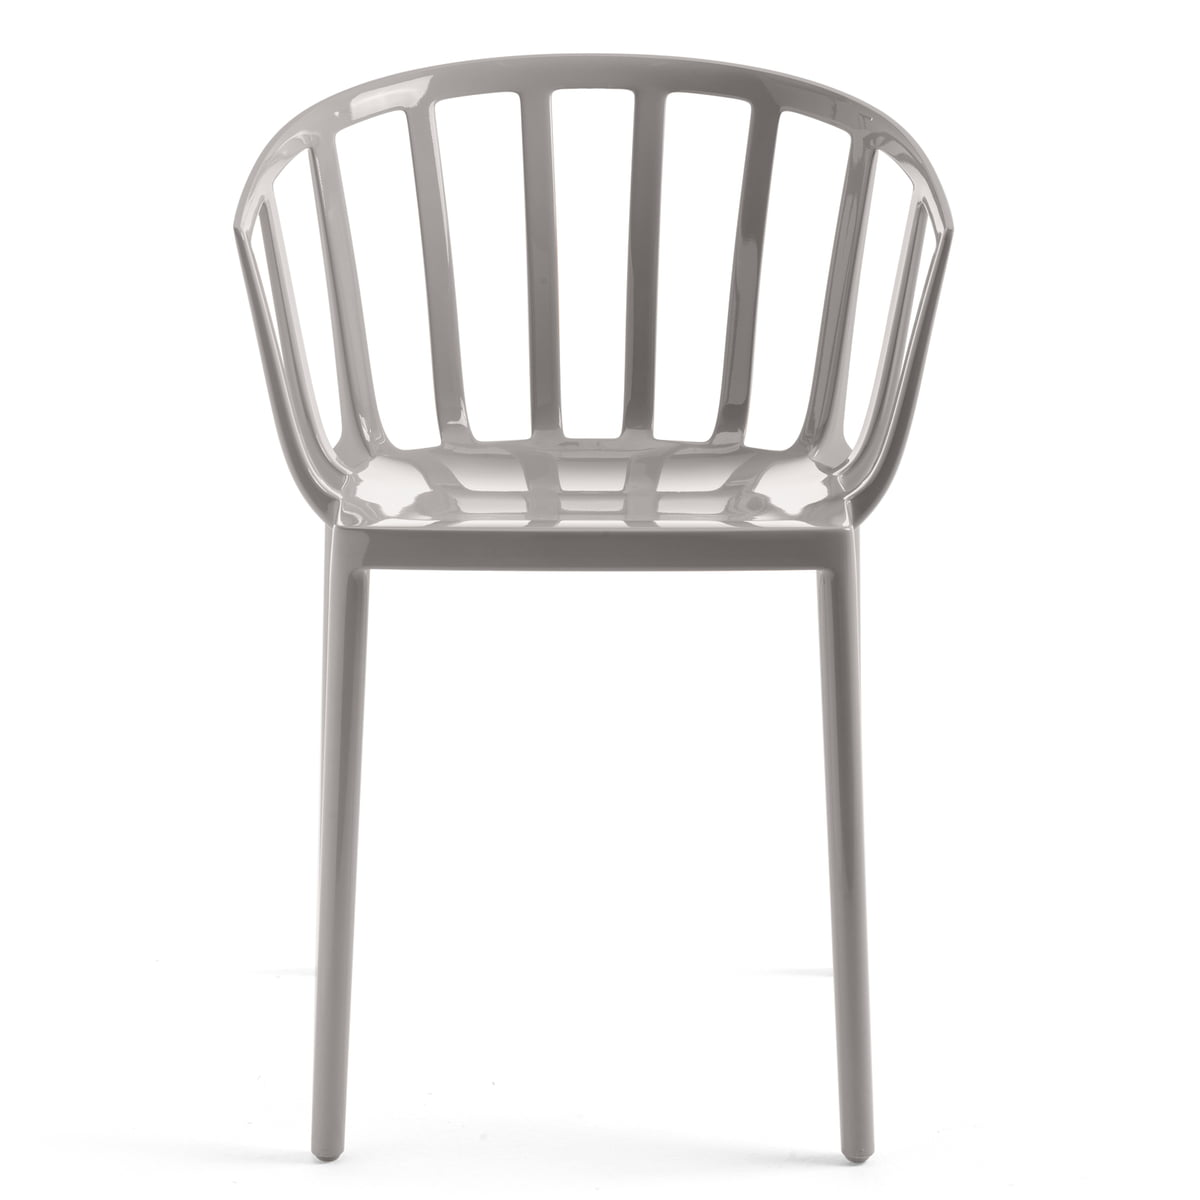 Kartell - Chaise Venise, gris